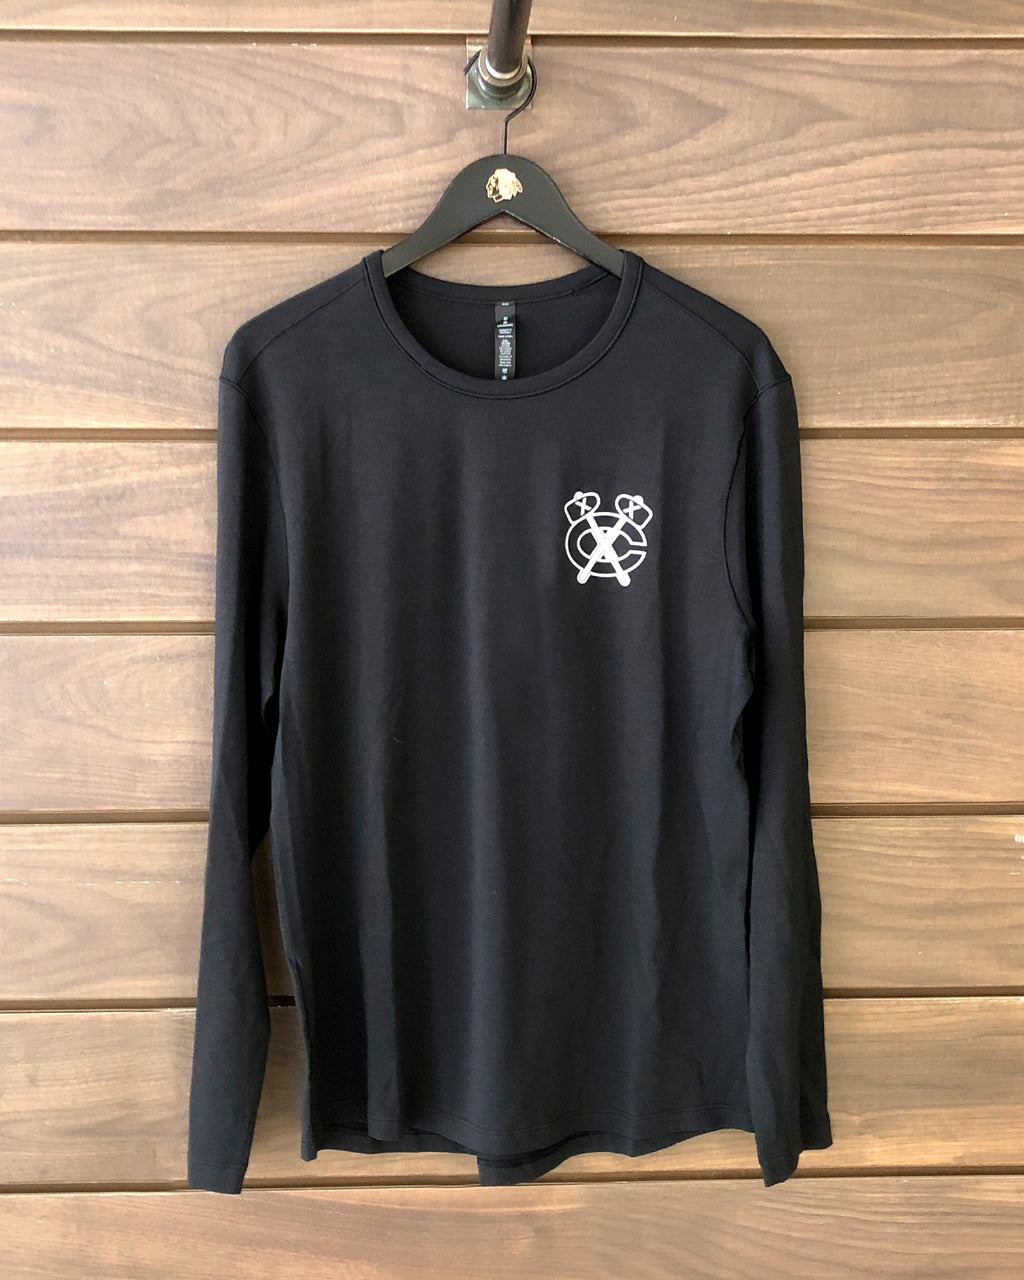 lululemon Black 5 Year Basic Long Sleeve